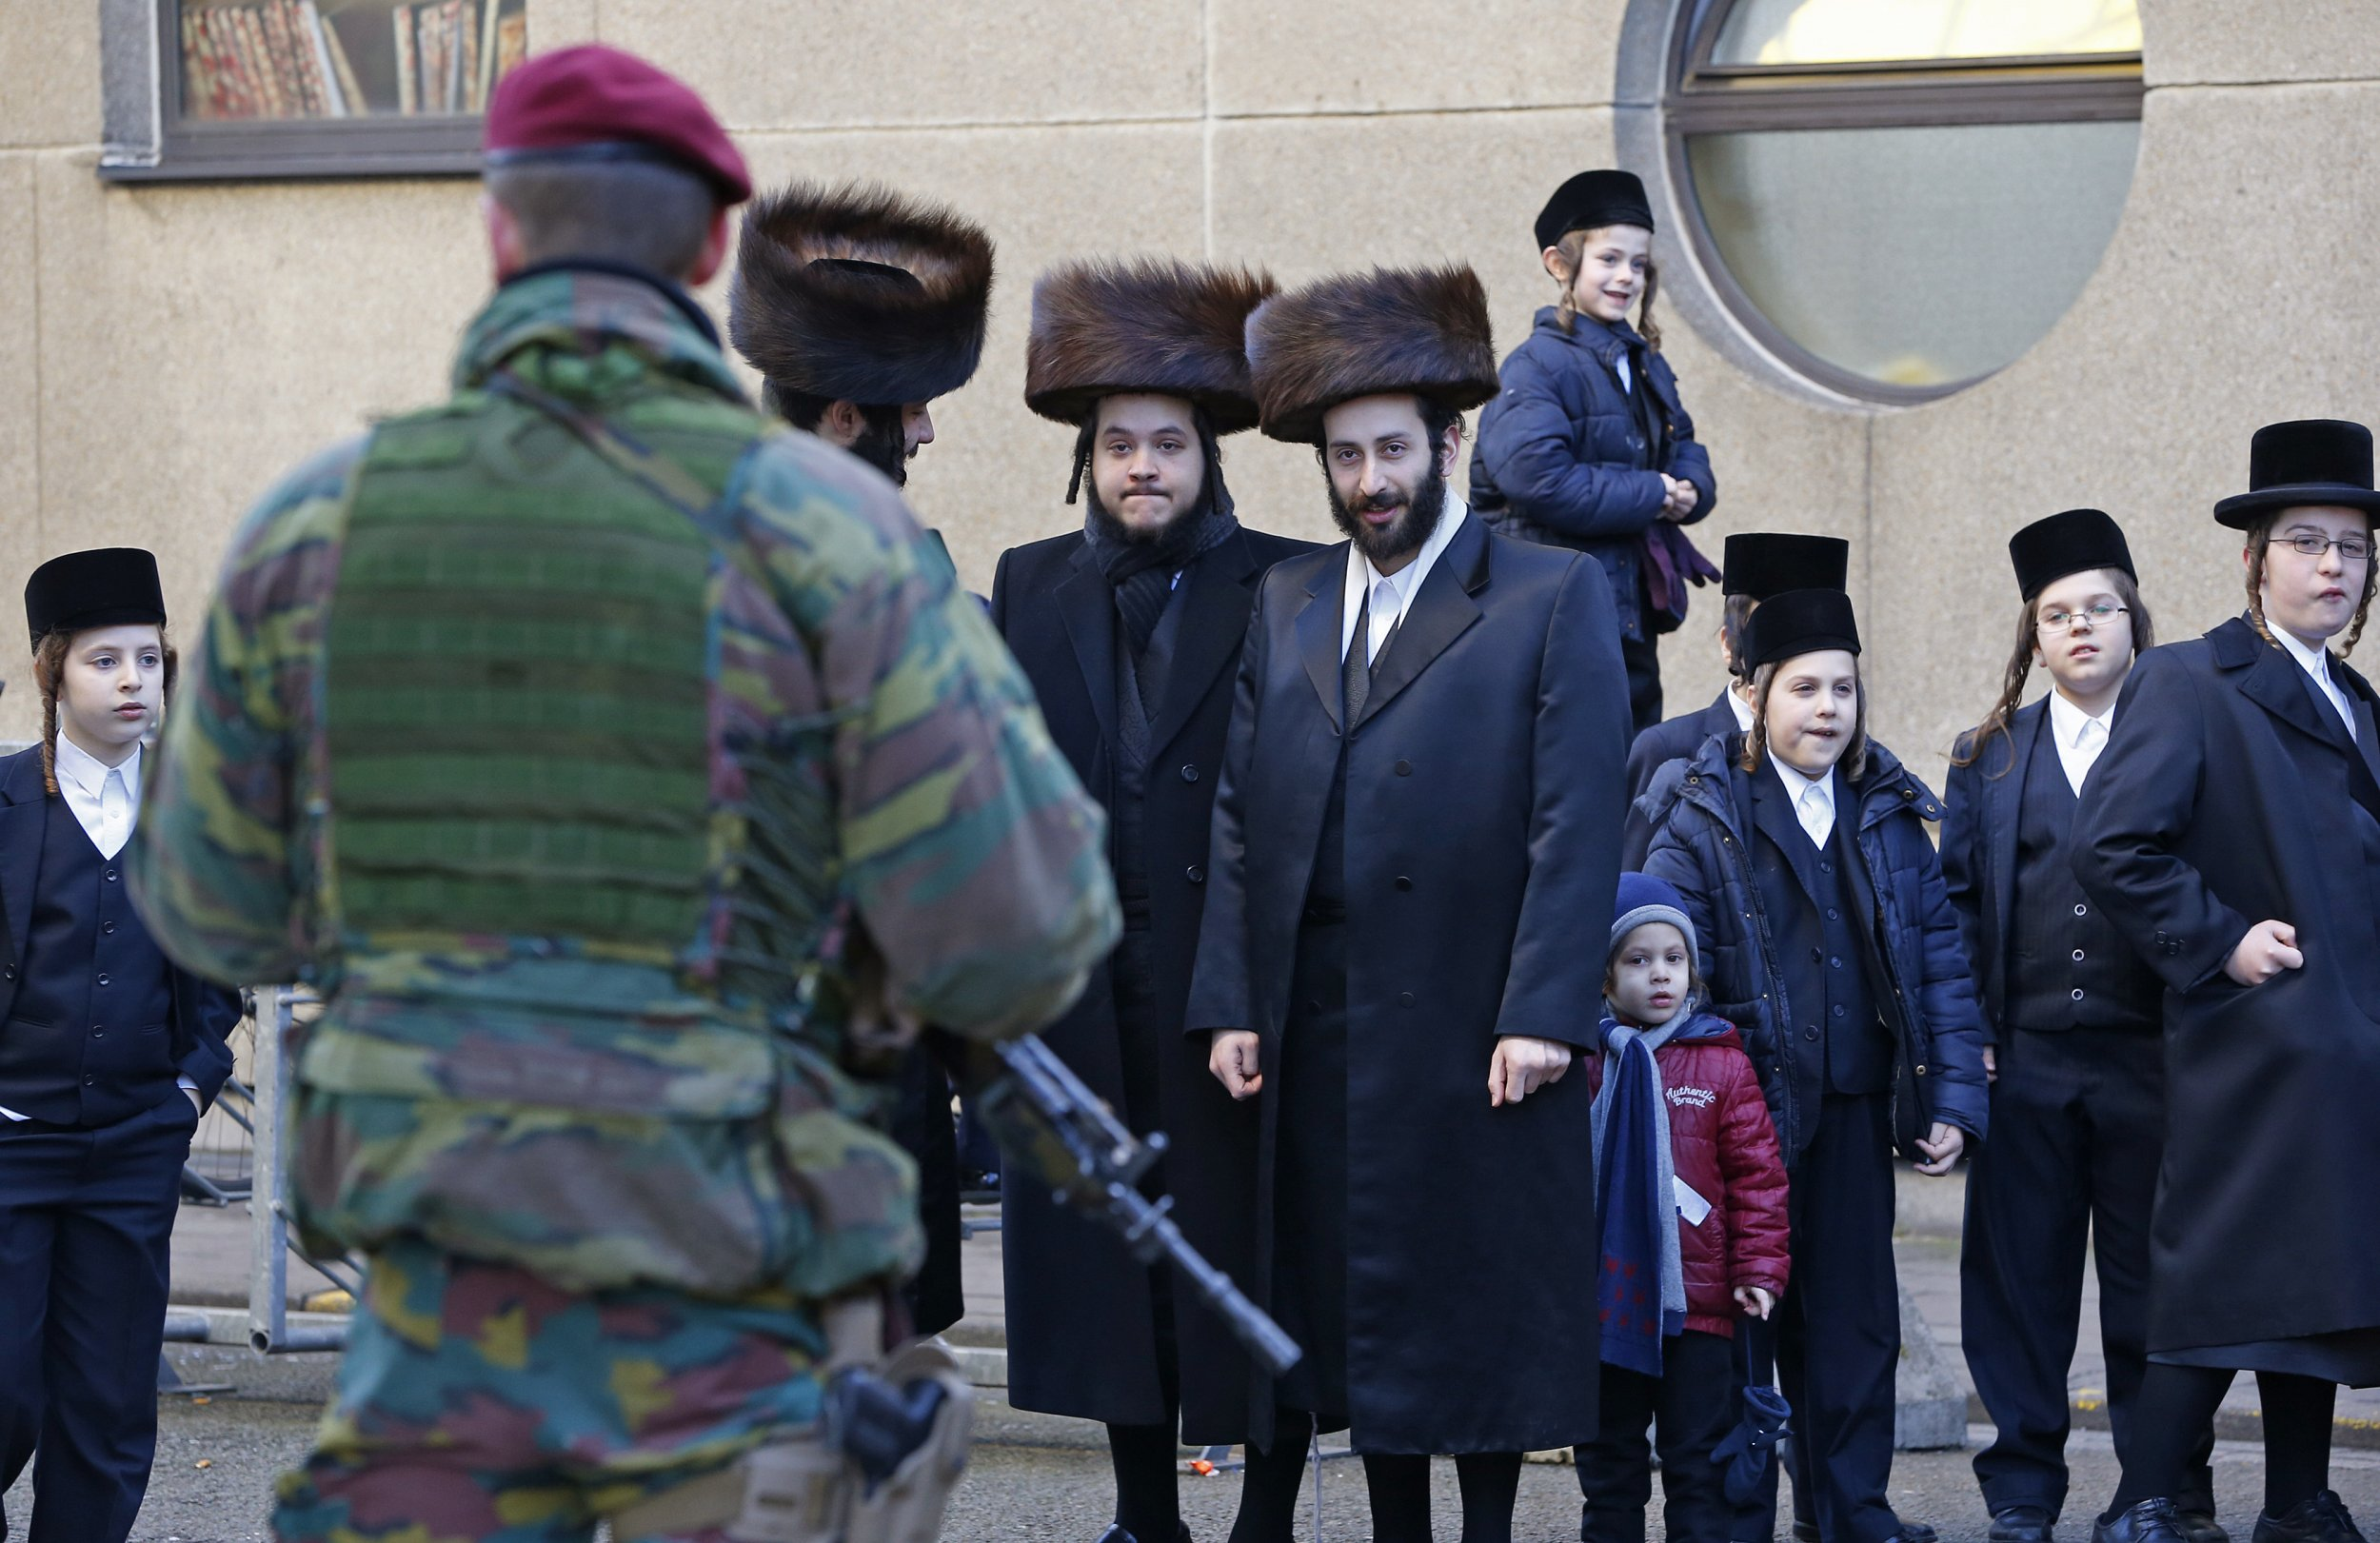 Belgian paratrooper outside a Jewish school in Antwerp